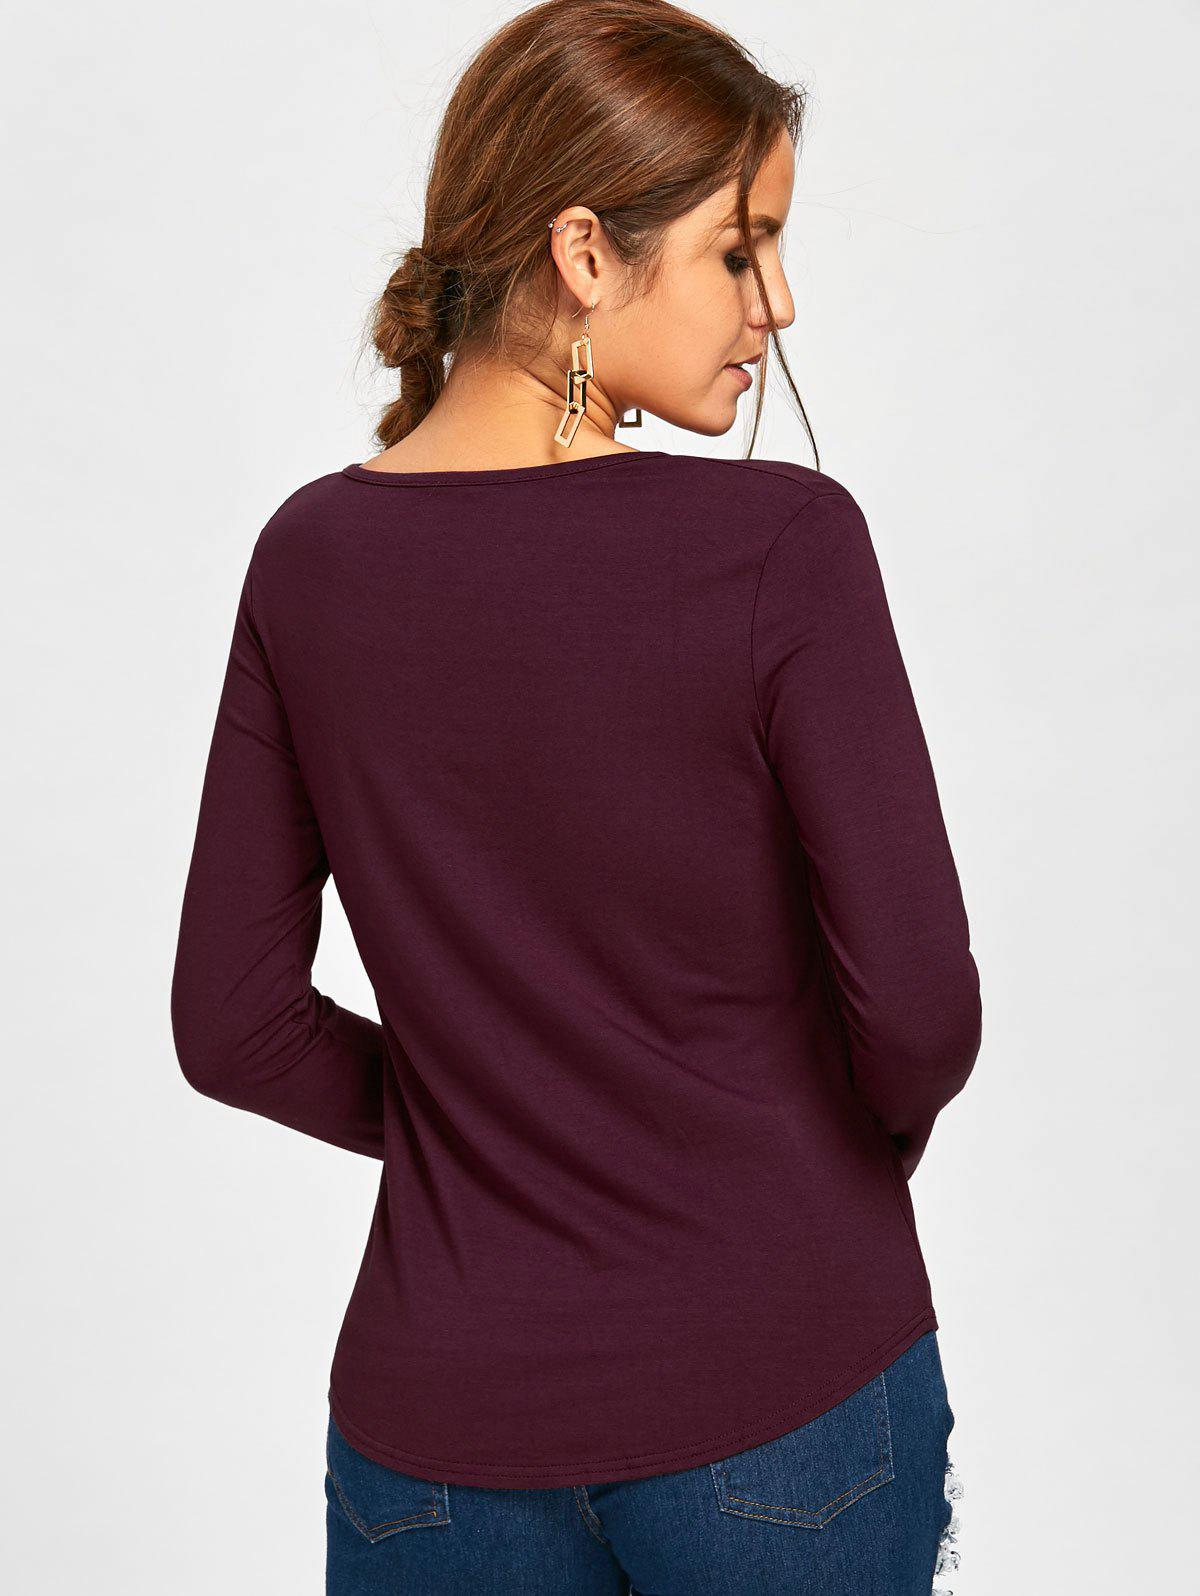 Plunge Lace Up Long Sleeve Tee - WINE RED XL